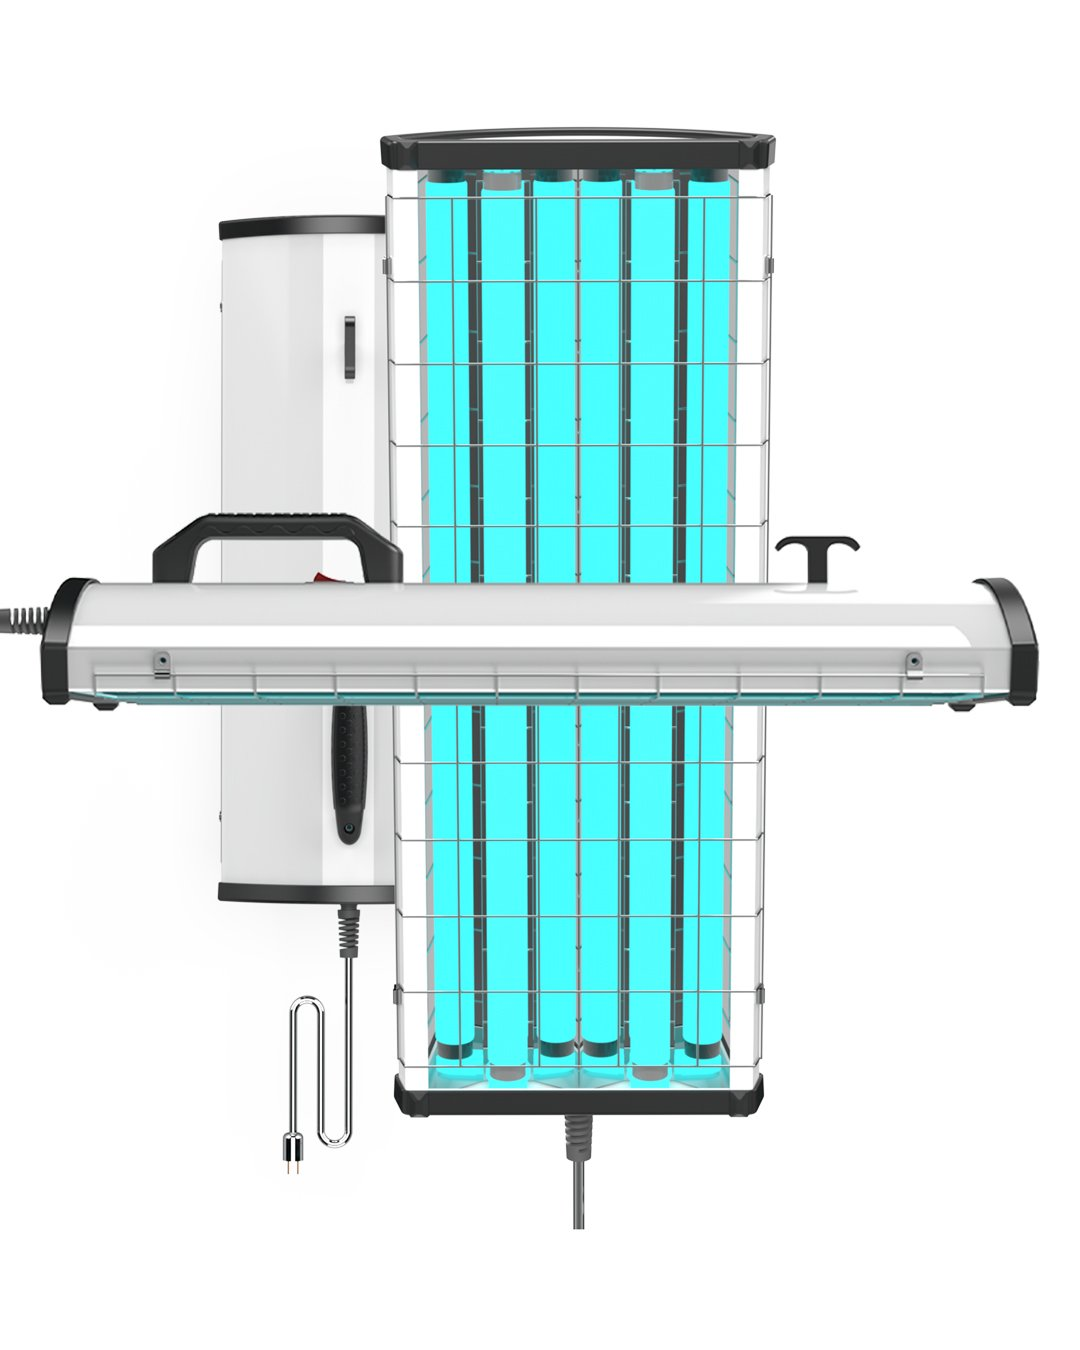 Handheld UVC Disinfection Light XtraLight LED Solutions